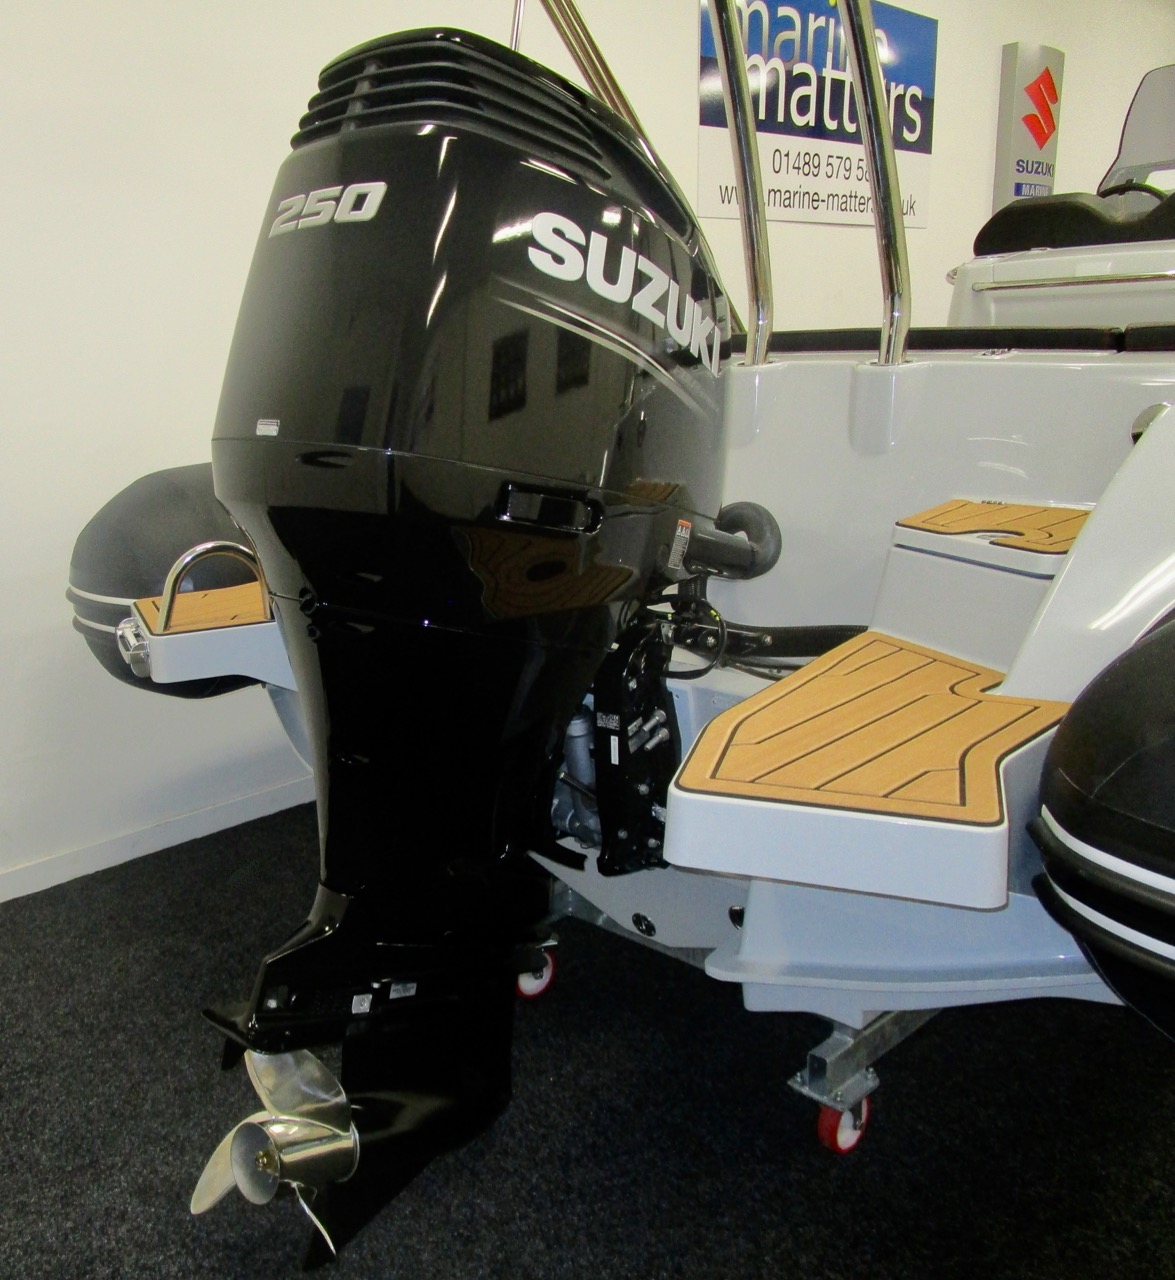 Suzuki DF250APX outboard engine